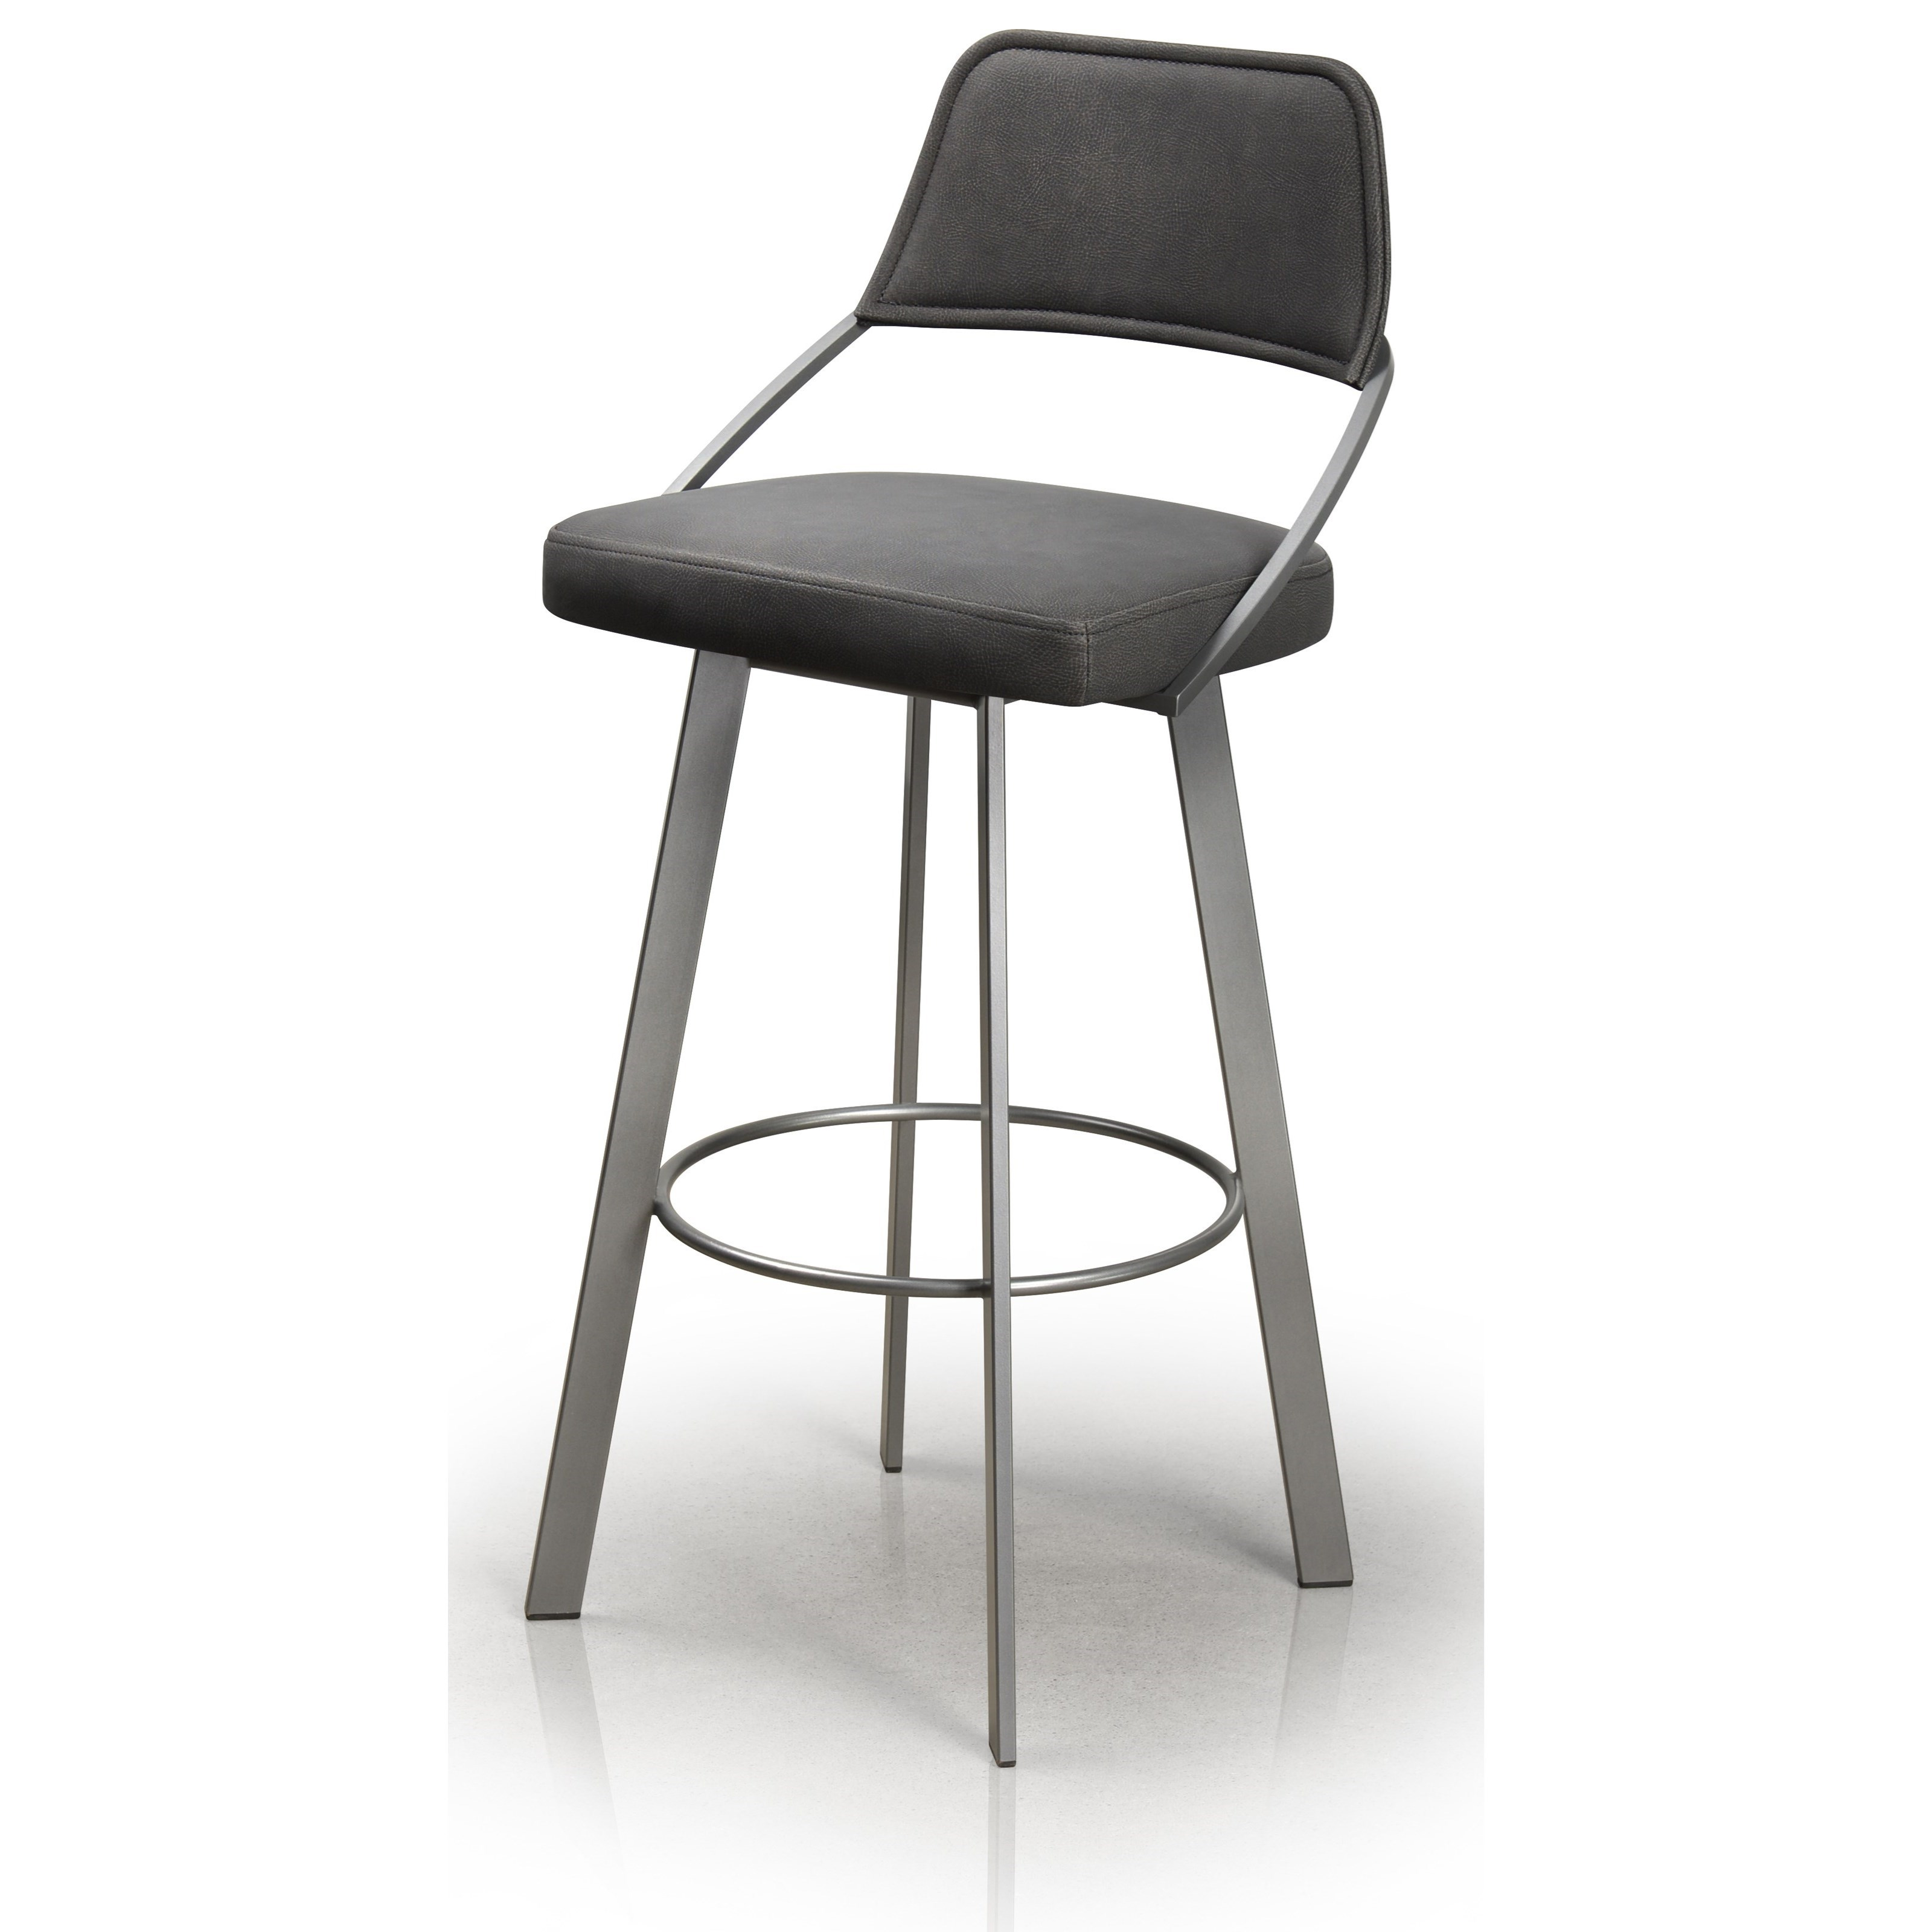 Contemporary Seating Wish Bar Stool by Trica at Dinette Depot